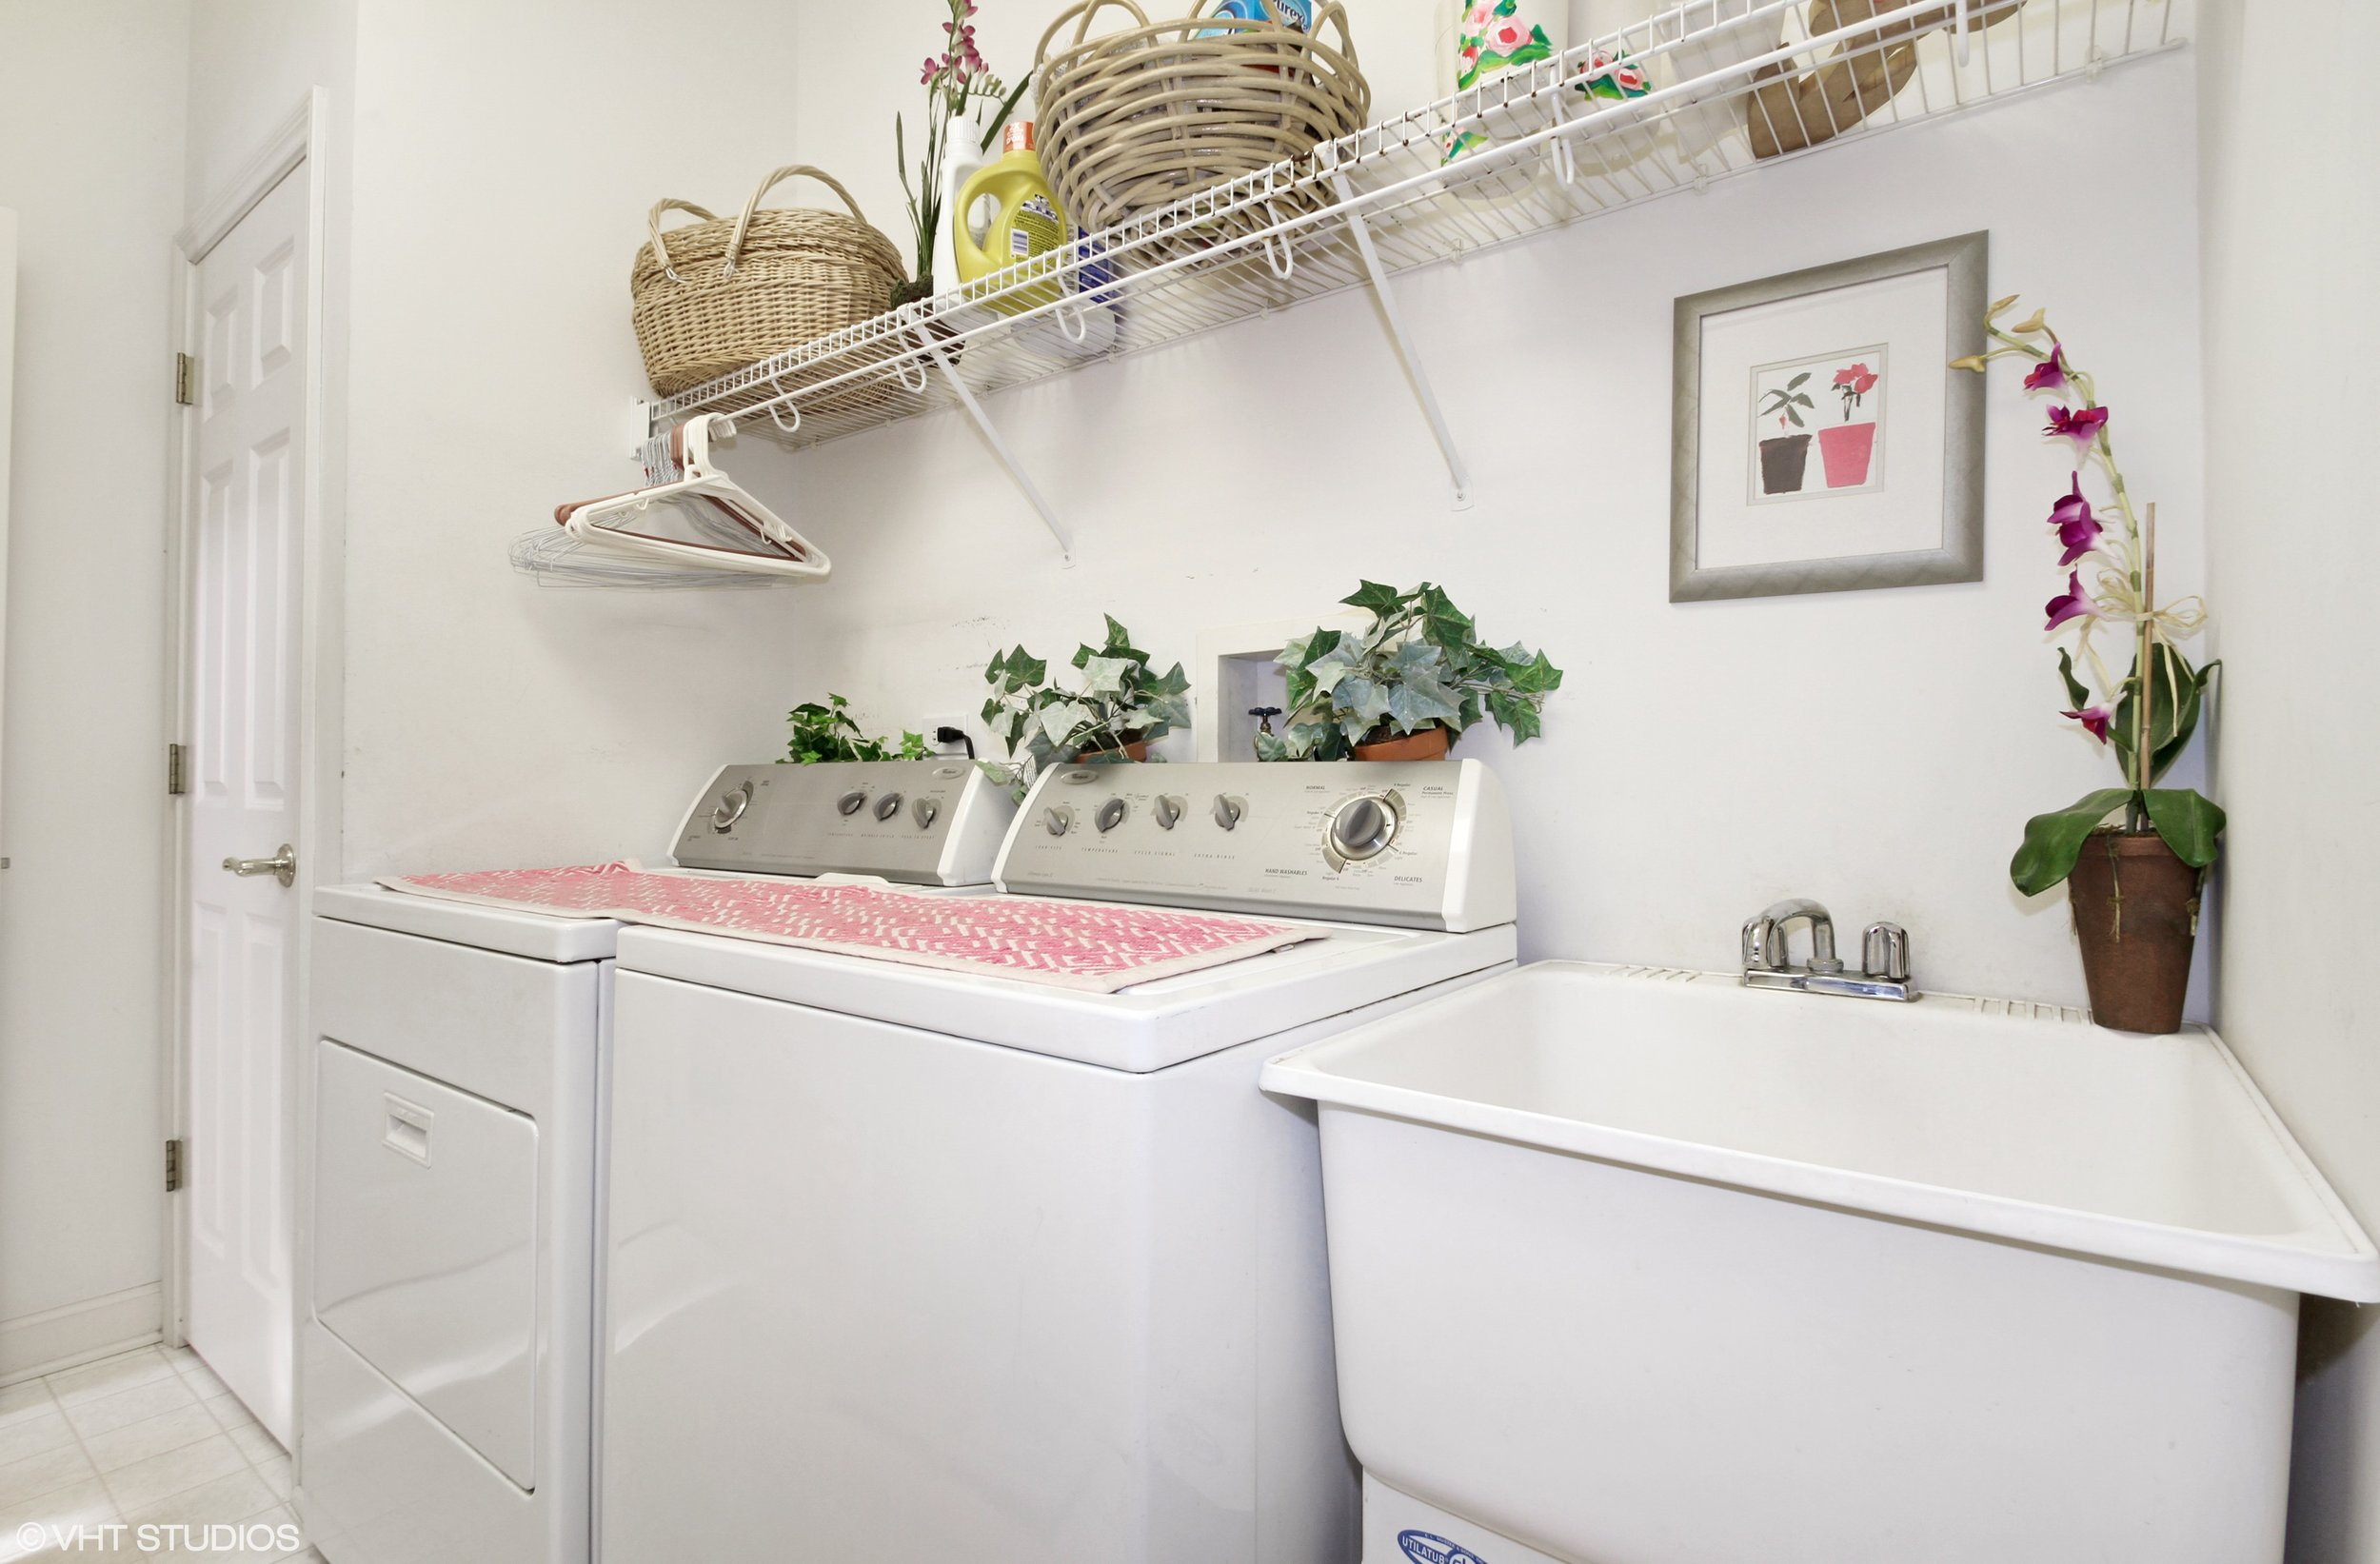 16_1816WestleighDr_44_LaundryRoom_HiRes.jpg